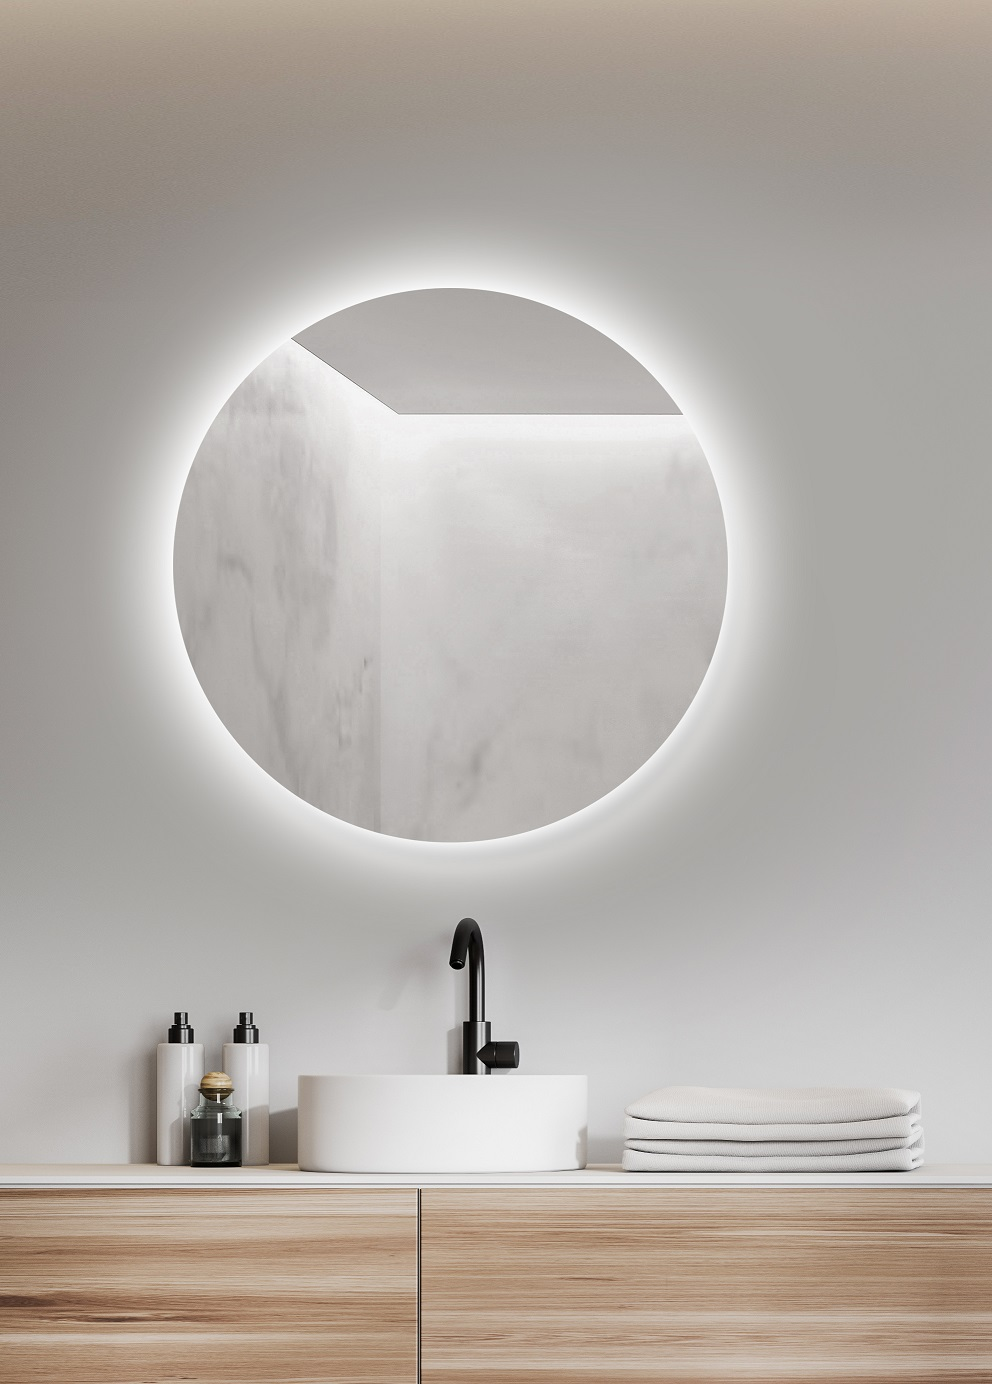 White bathroom interior with double sink